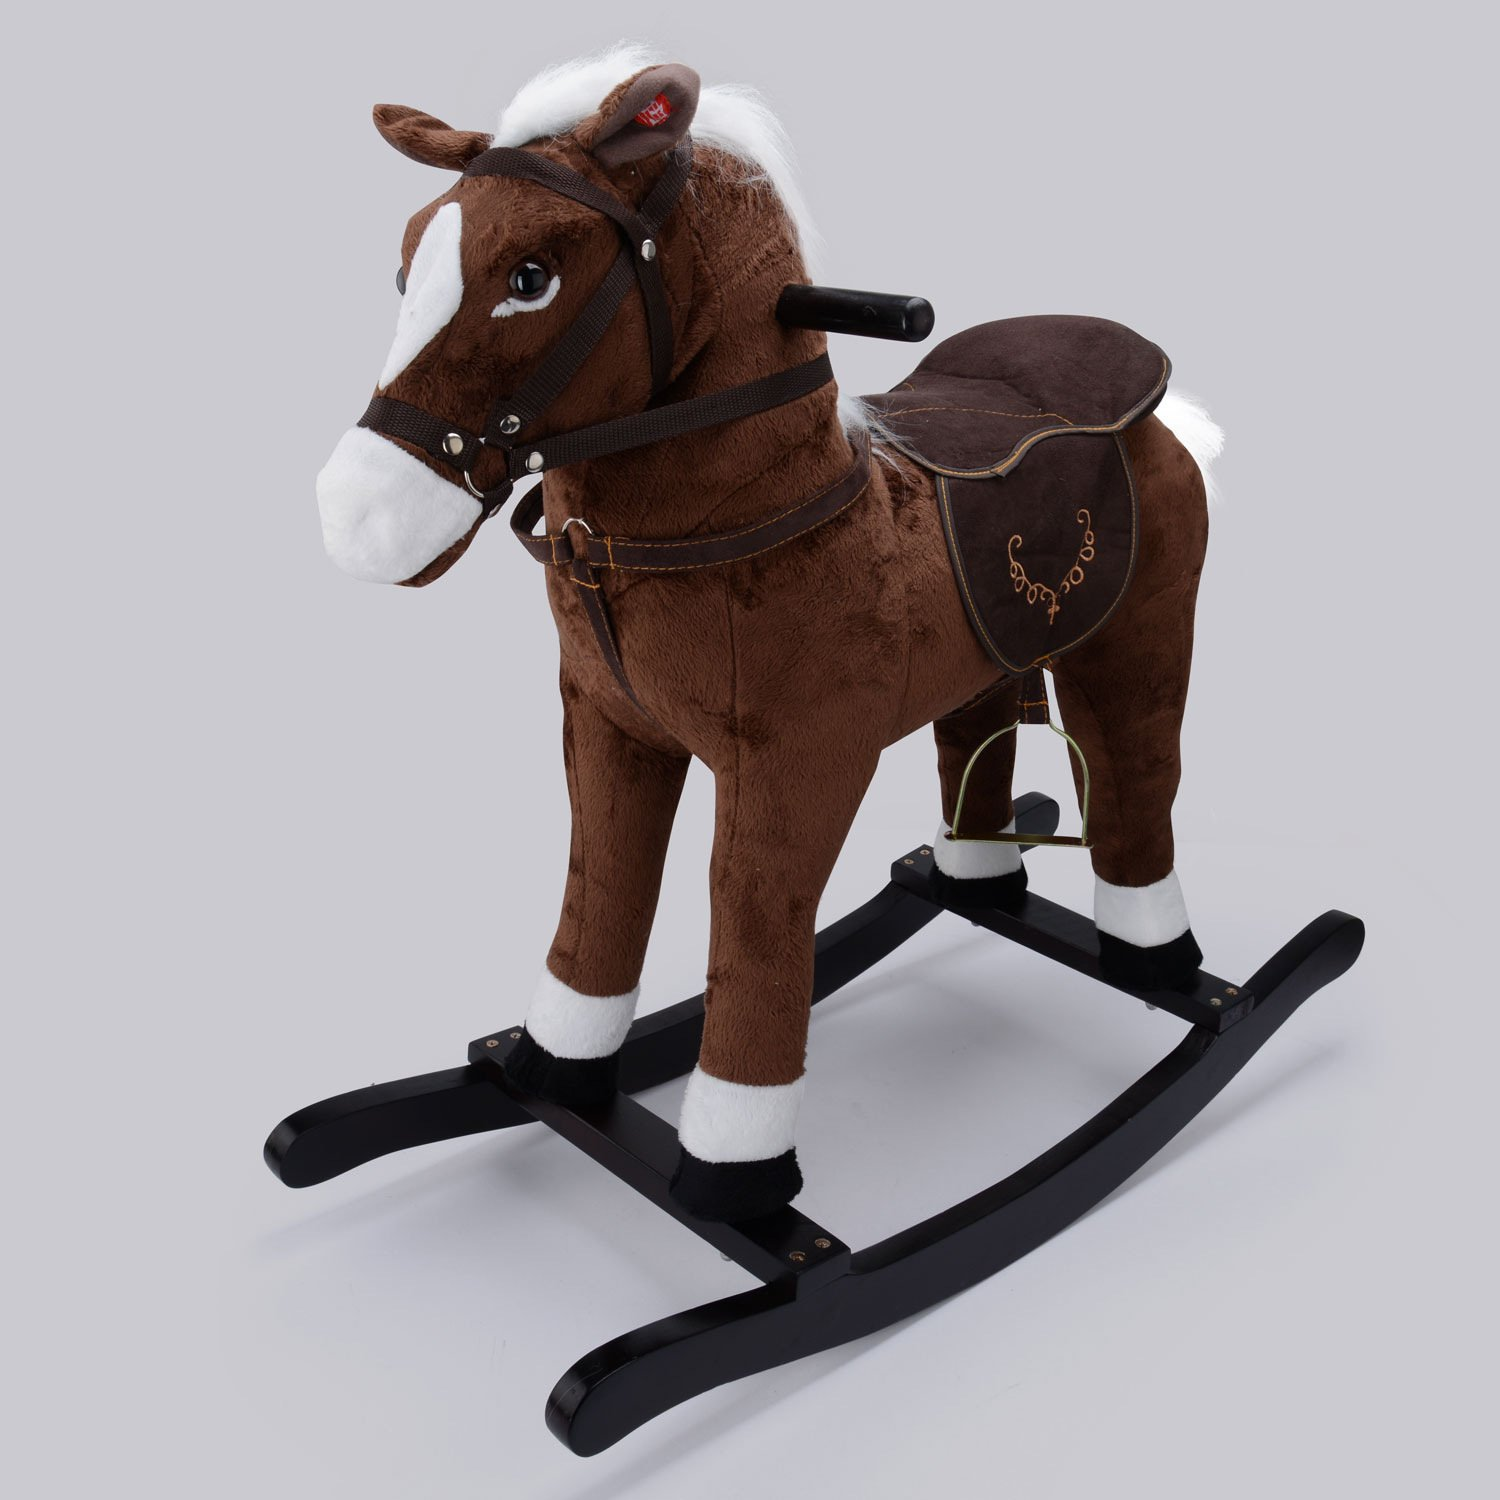 What are the Best Rocking Horse Toys for Girls